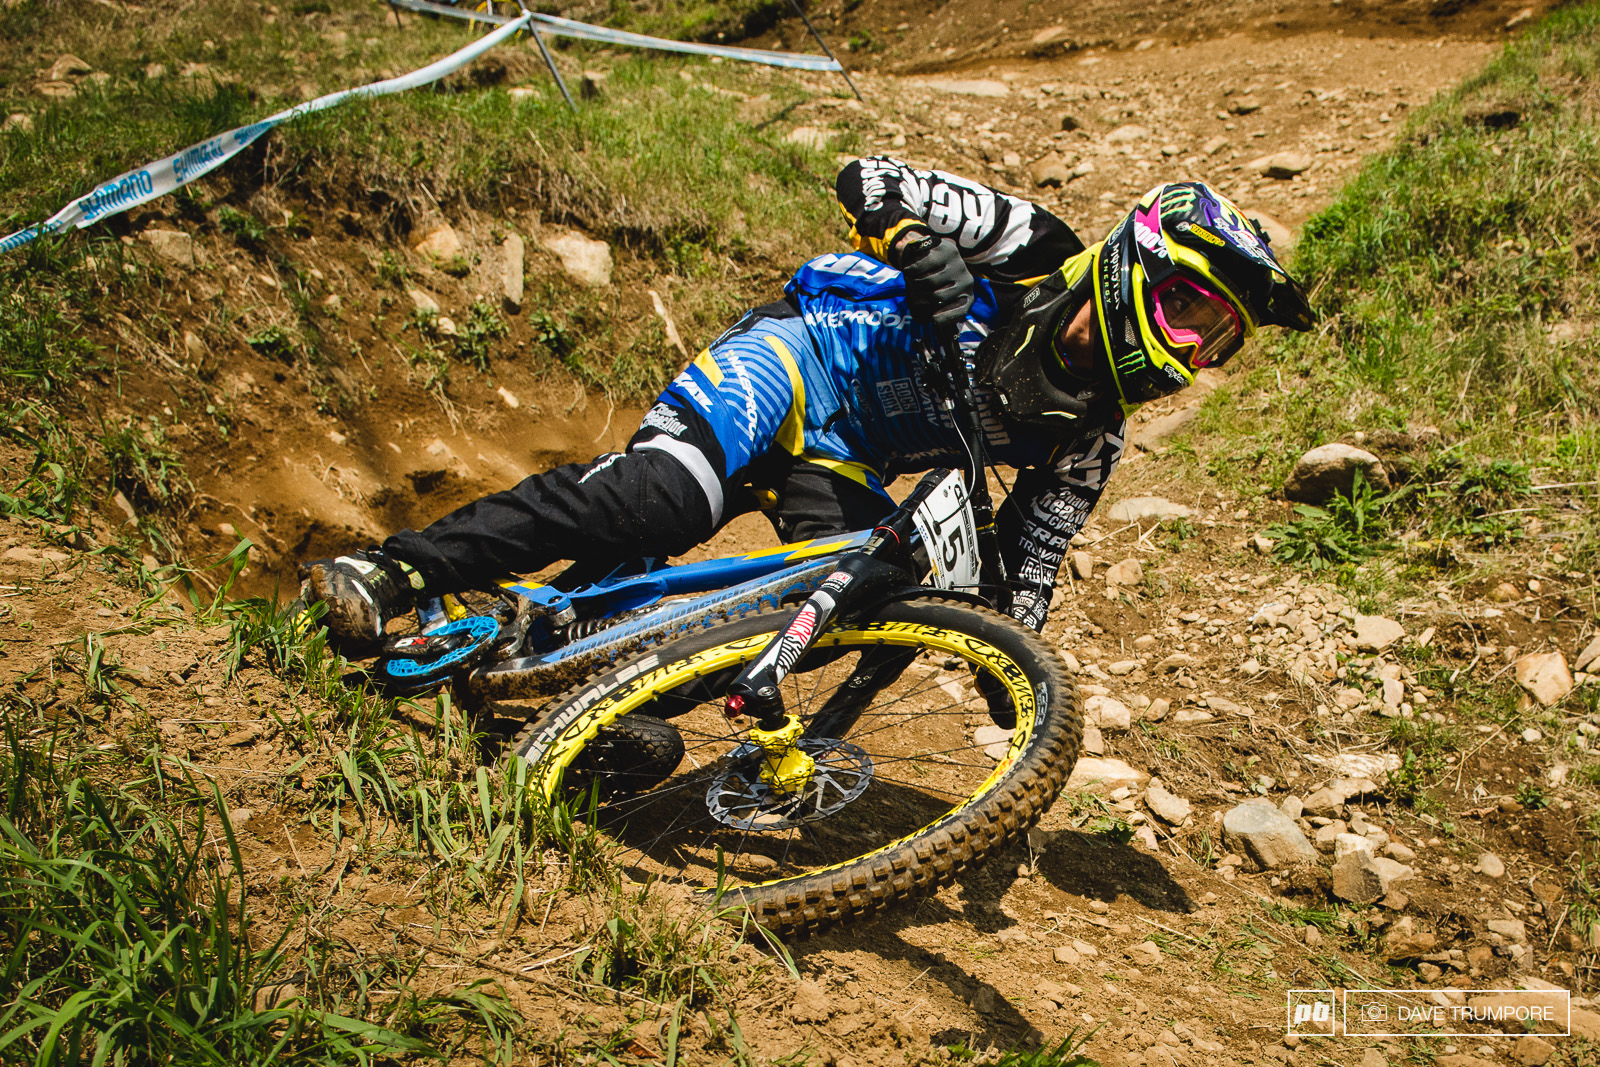 The last time Sam Hill won a major race it was 2010 World Champs at MSA. The last time he won a World Cup was here at MSA in 2009. It s only fitting that the same venue would end his dry spell.